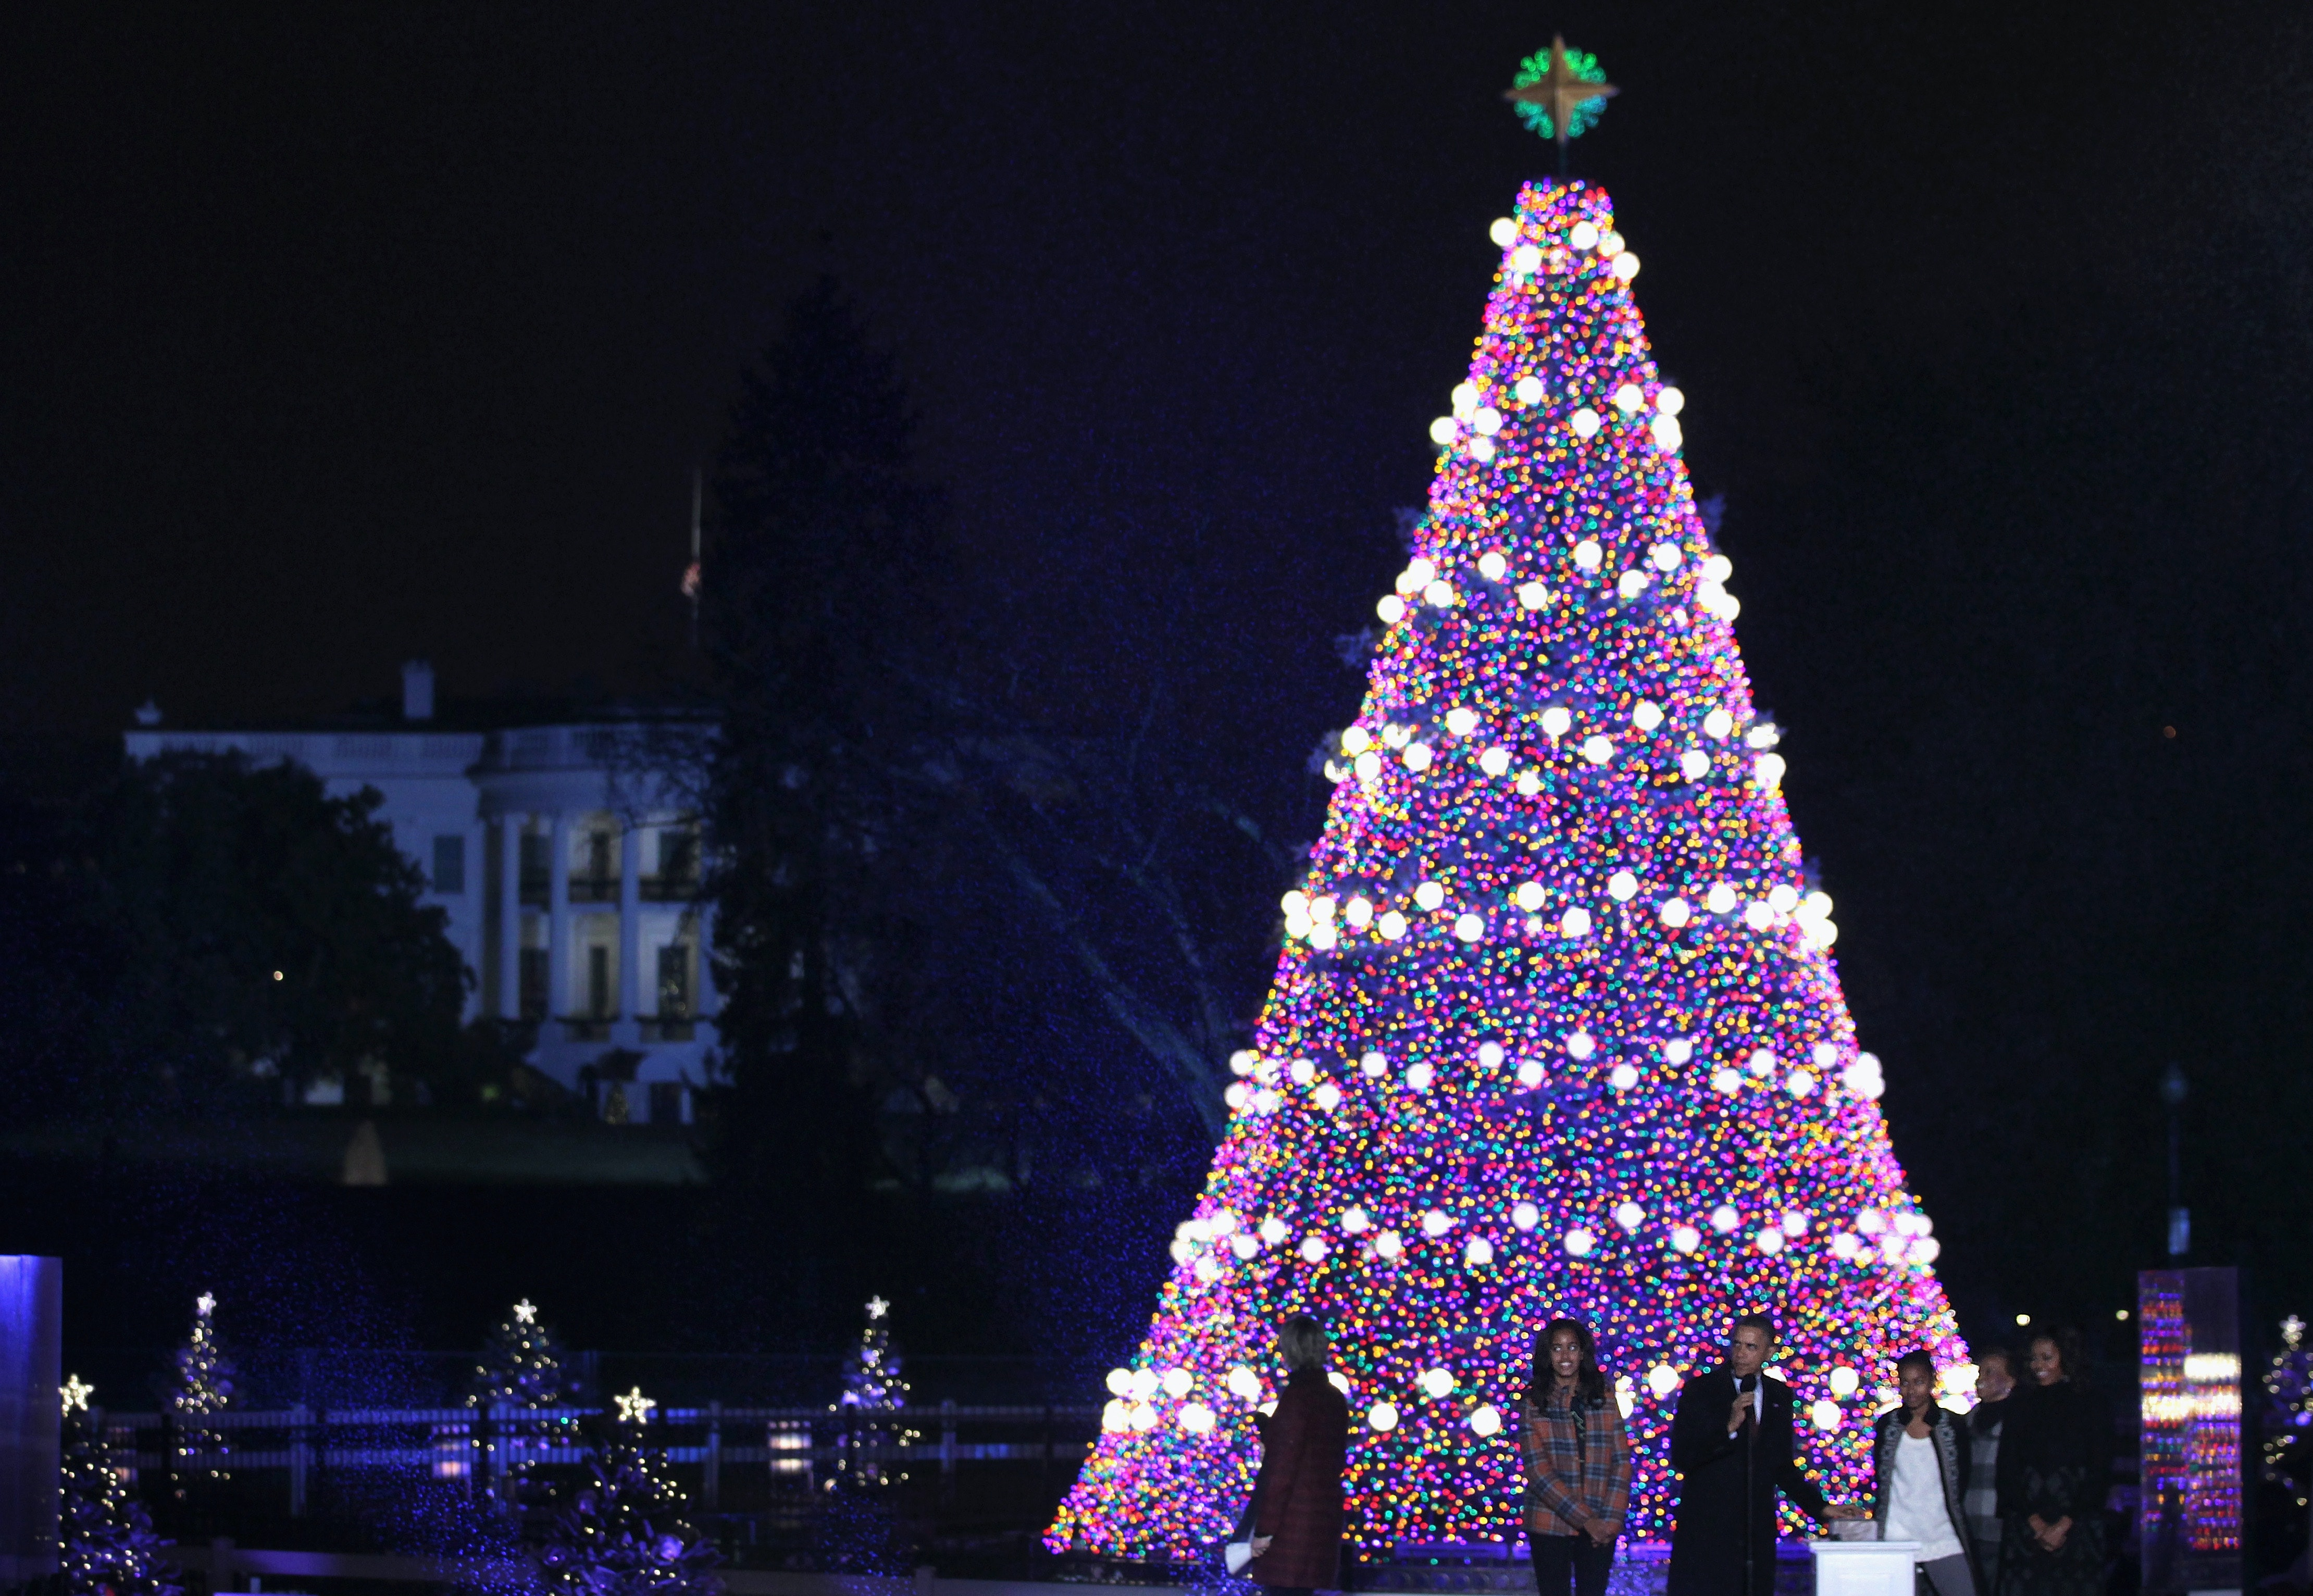 how to code white house christmas tree lights into any shiny shape you like thanks to google